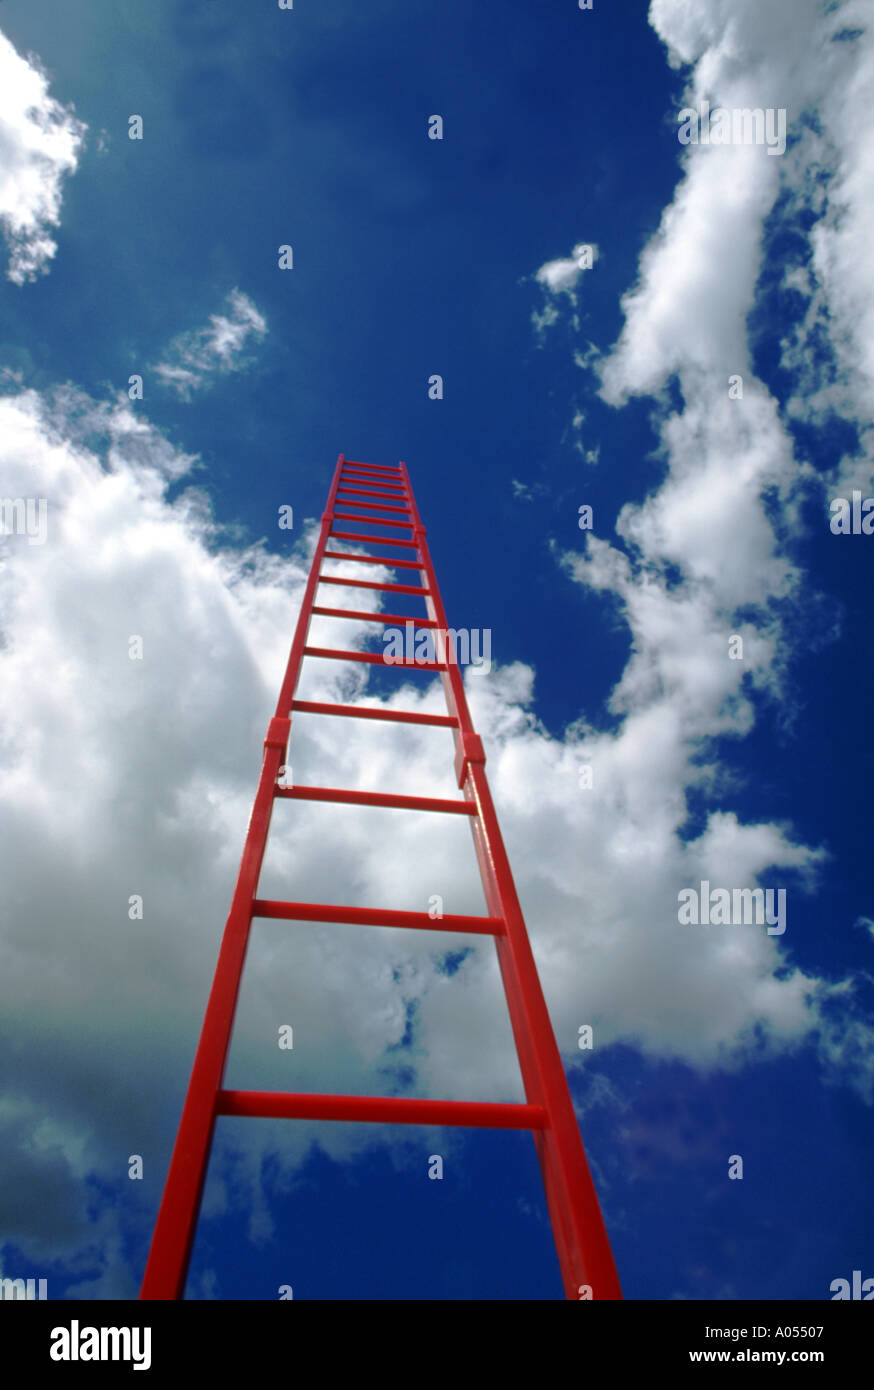 Red Ladder Rising Into Blue Sky And Clouds - Stock Image